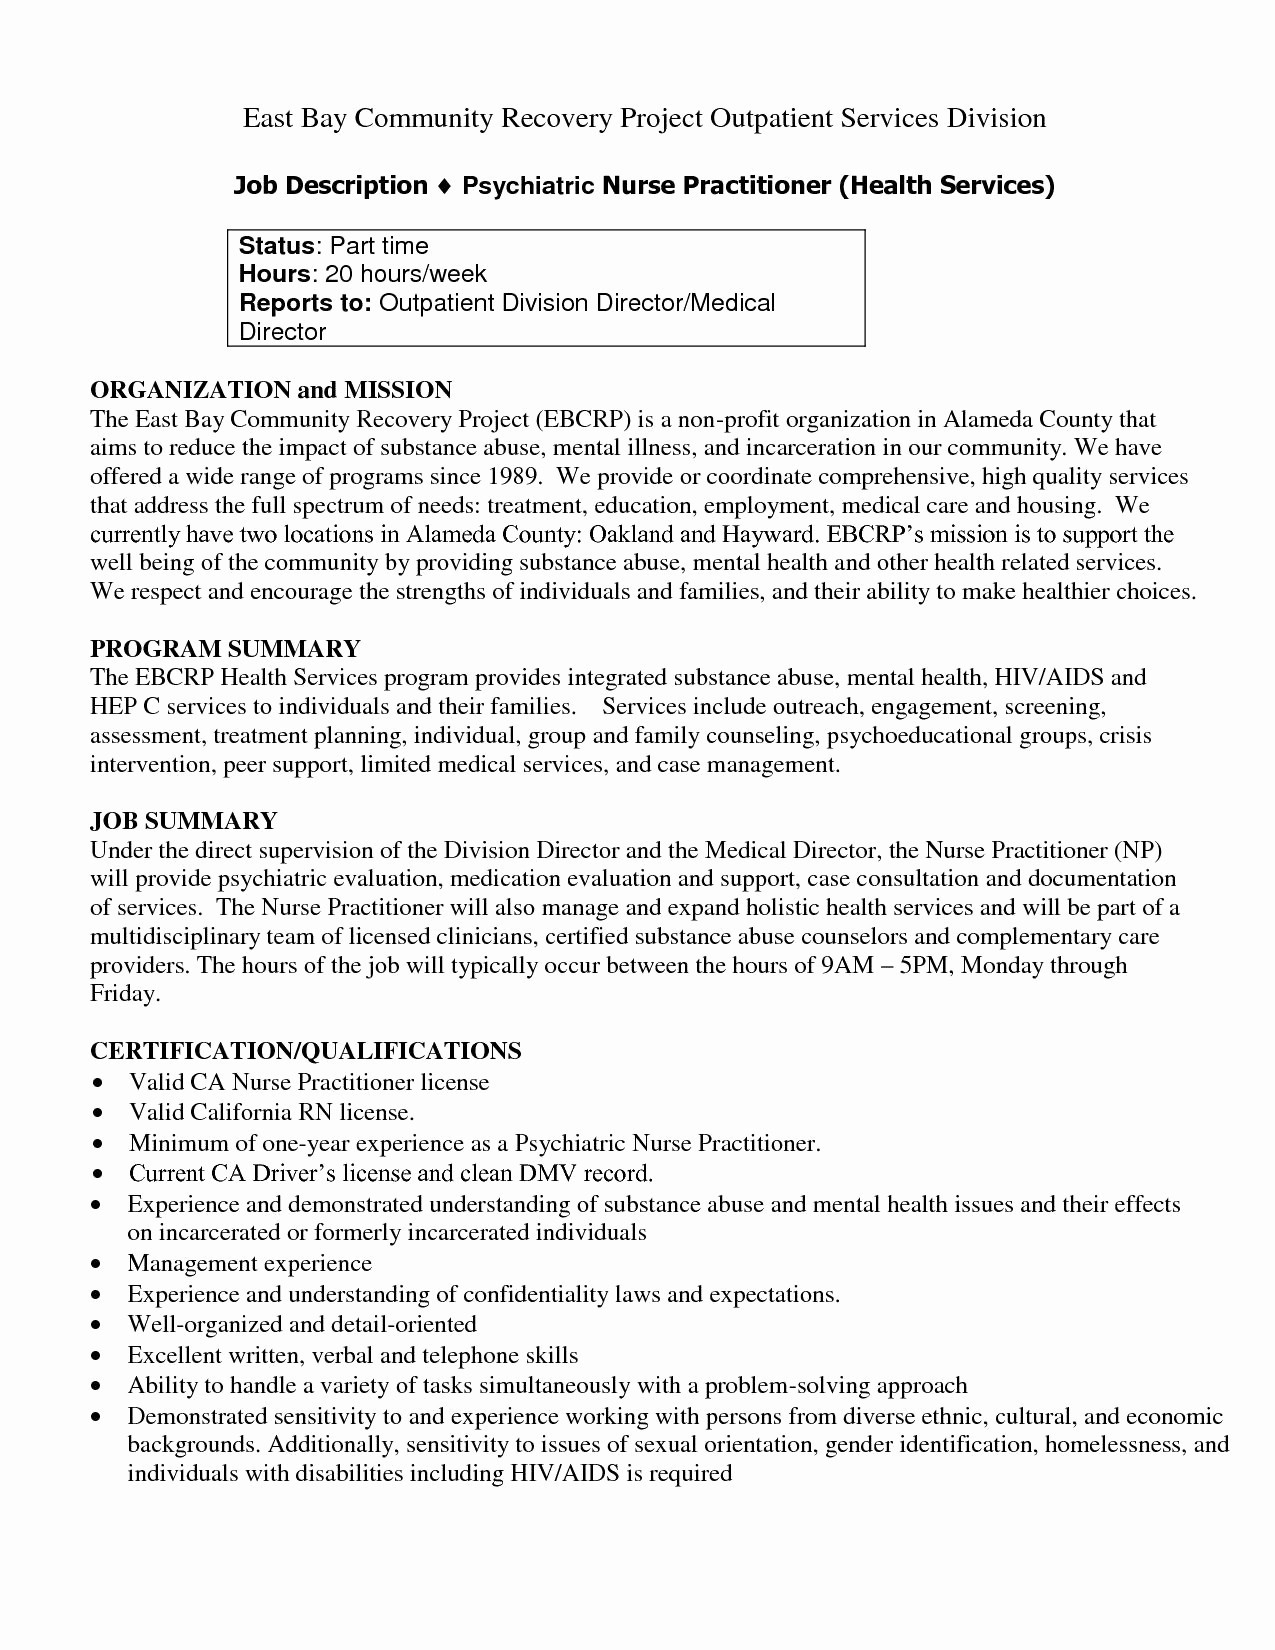 Physical therapy Aide Resume - Physical therapy assistant Resume Unique Physical therapy Resume